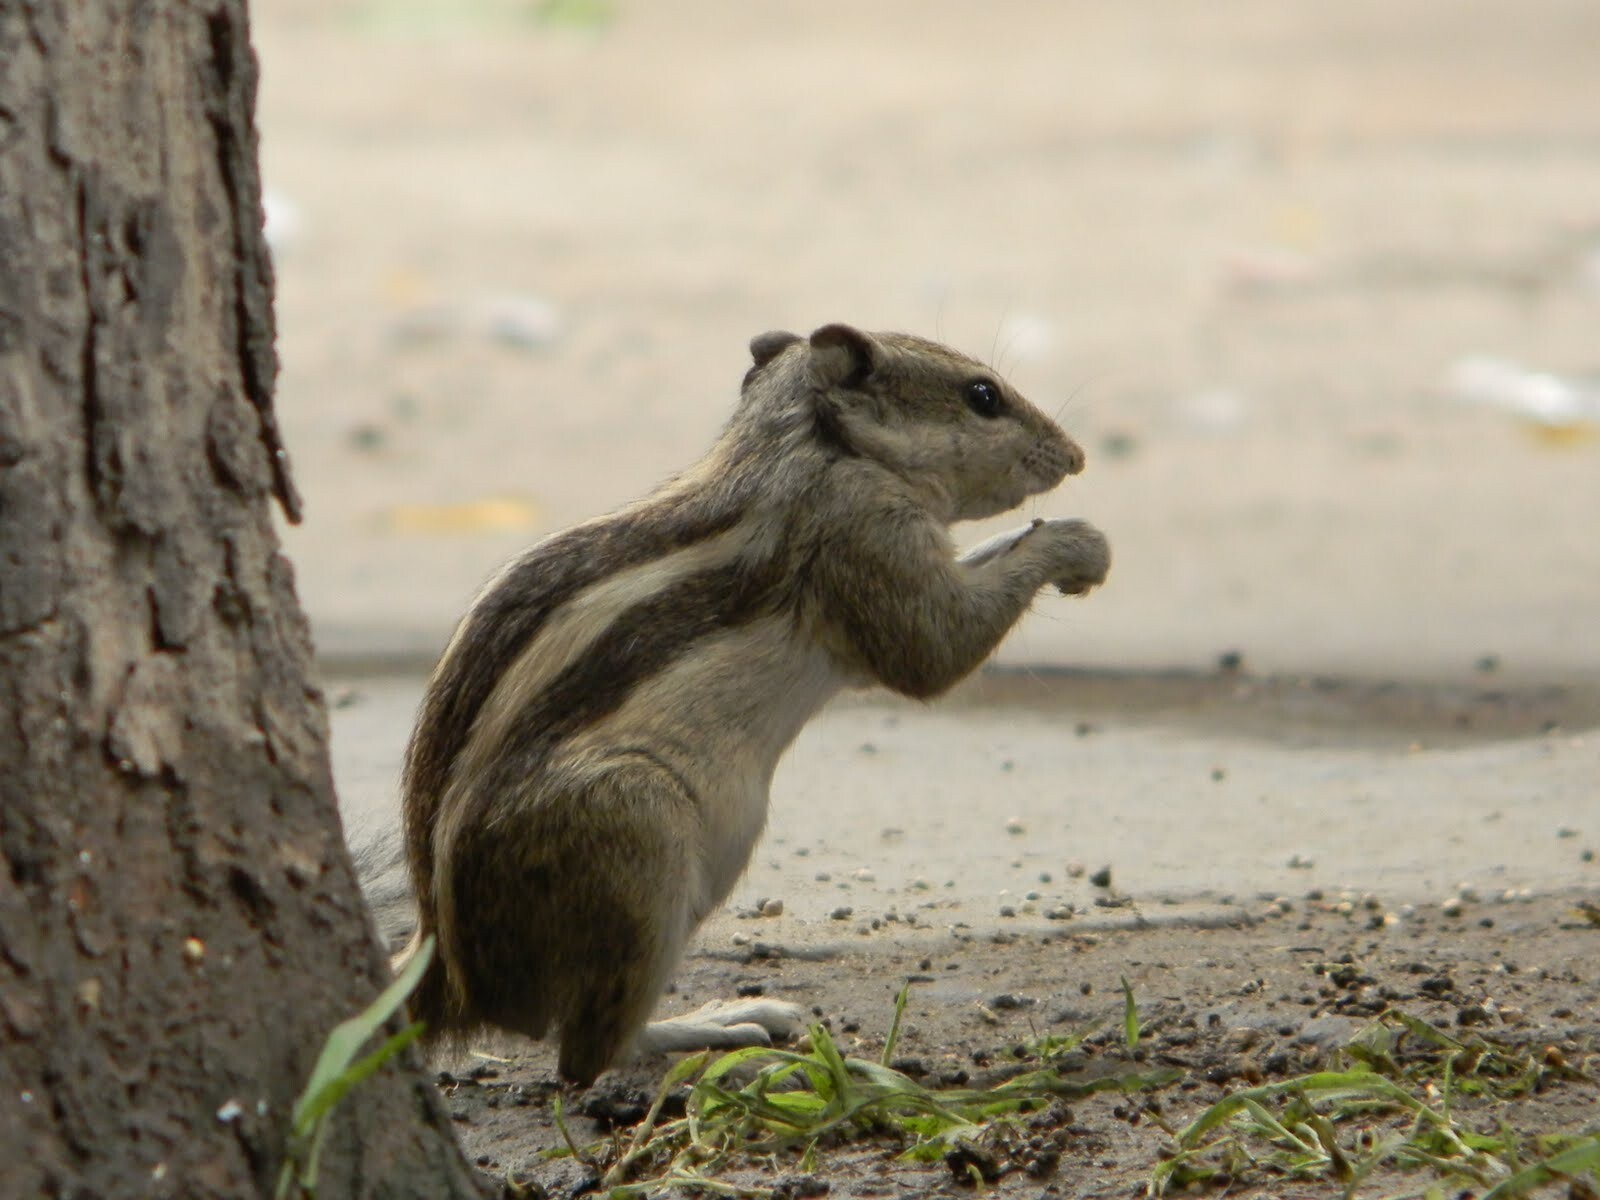 Indian Squirrel Eating Near the Tree | HD Wallpapers